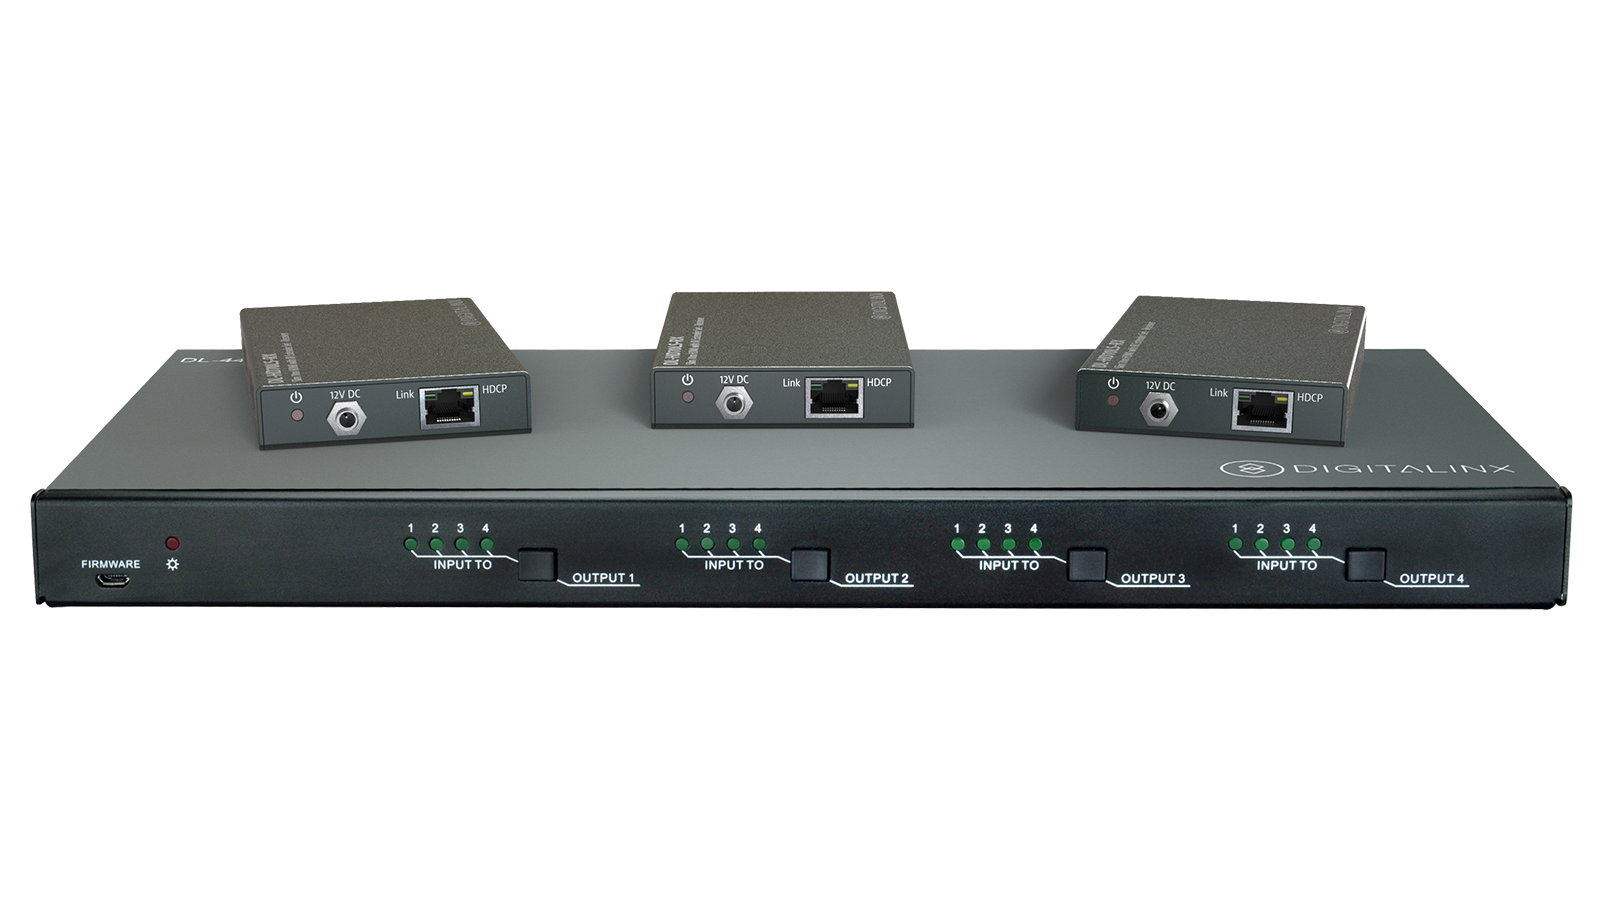 Dl 44e Kit 4x4 4k Hdbt Matrix Switch Kitted With 3 Hdbaset Poe Thread Tele 4 Way Alternate Wiring Plz Help Receivers